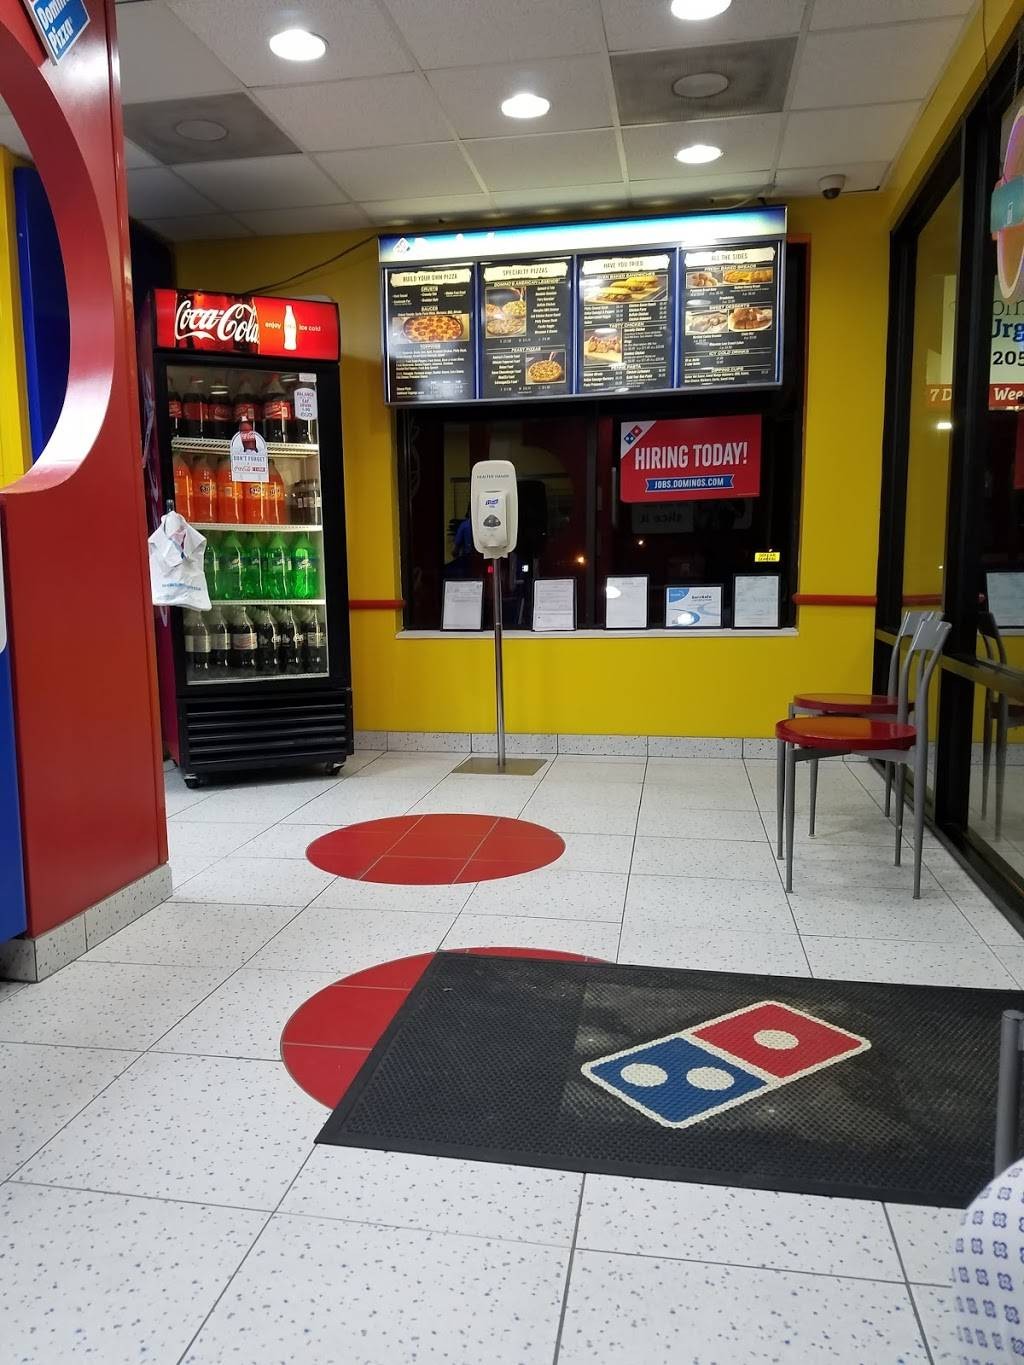 Dominos Pizza - meal delivery  | Photo 9 of 10 | Address: 1710 Decatur Hwy Ste 1, Fultondale, AL 35068, USA | Phone: (205) 841-3700